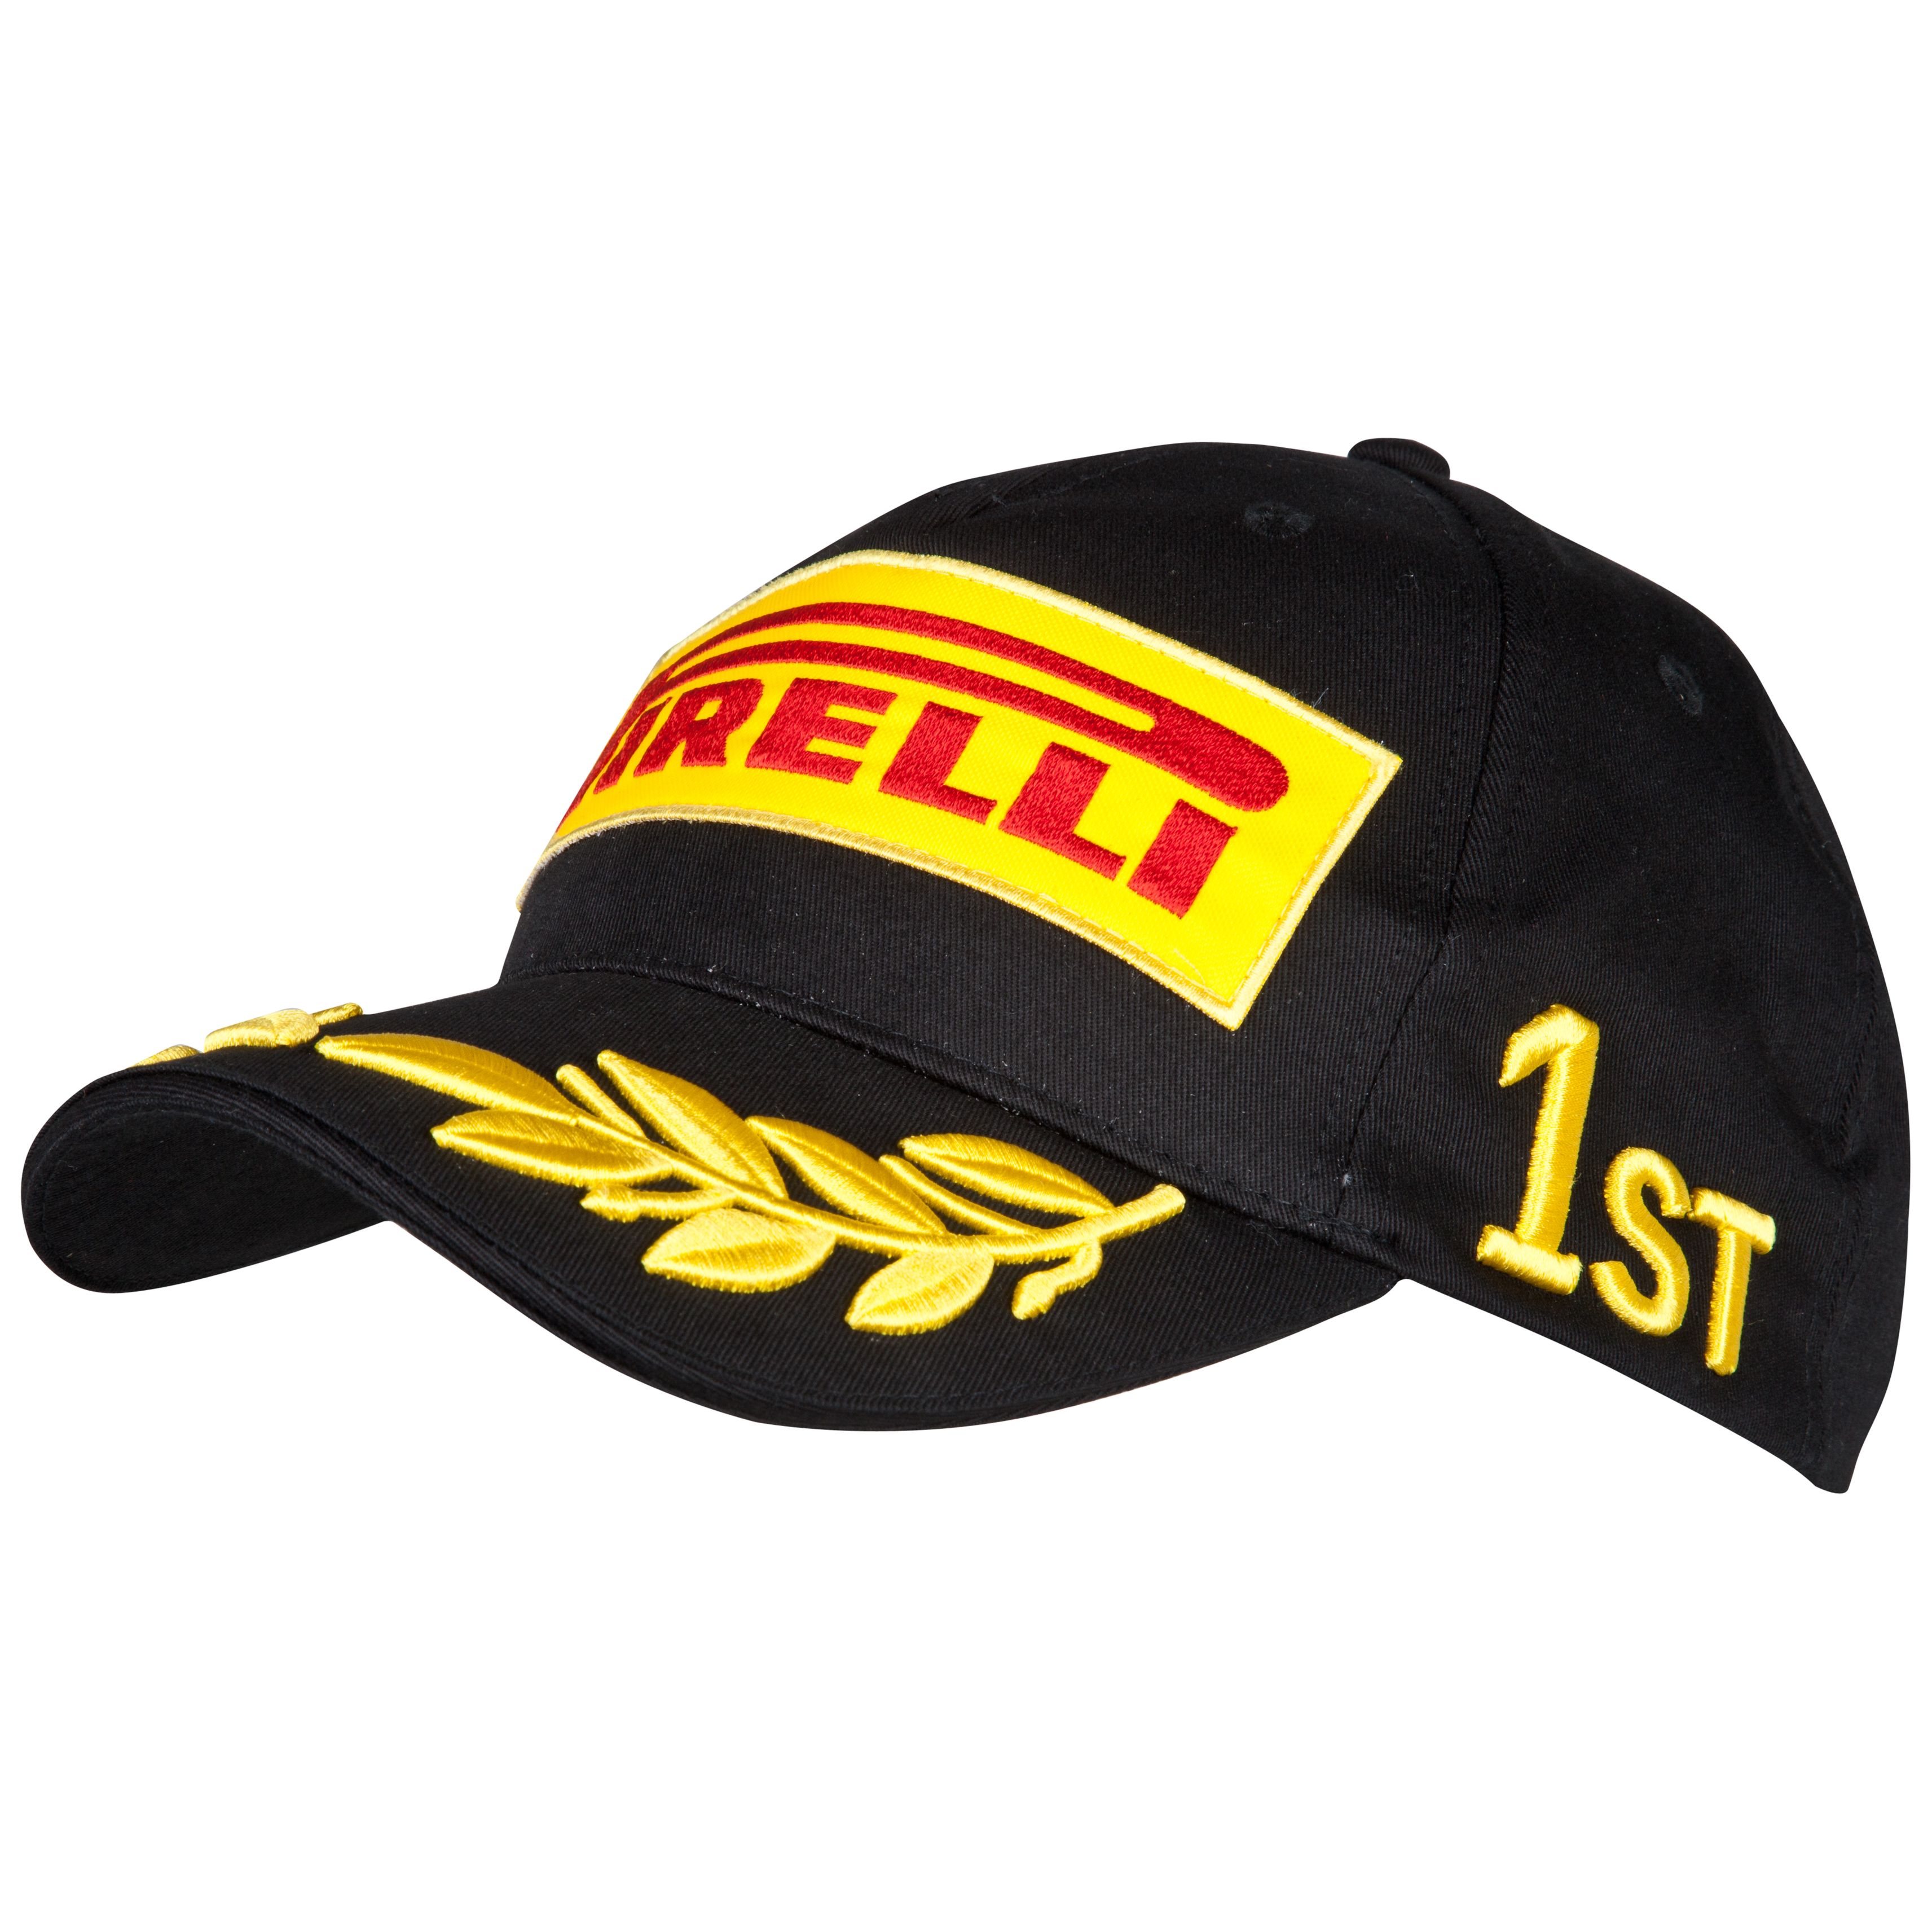 Pirelli Replica Podium Cap